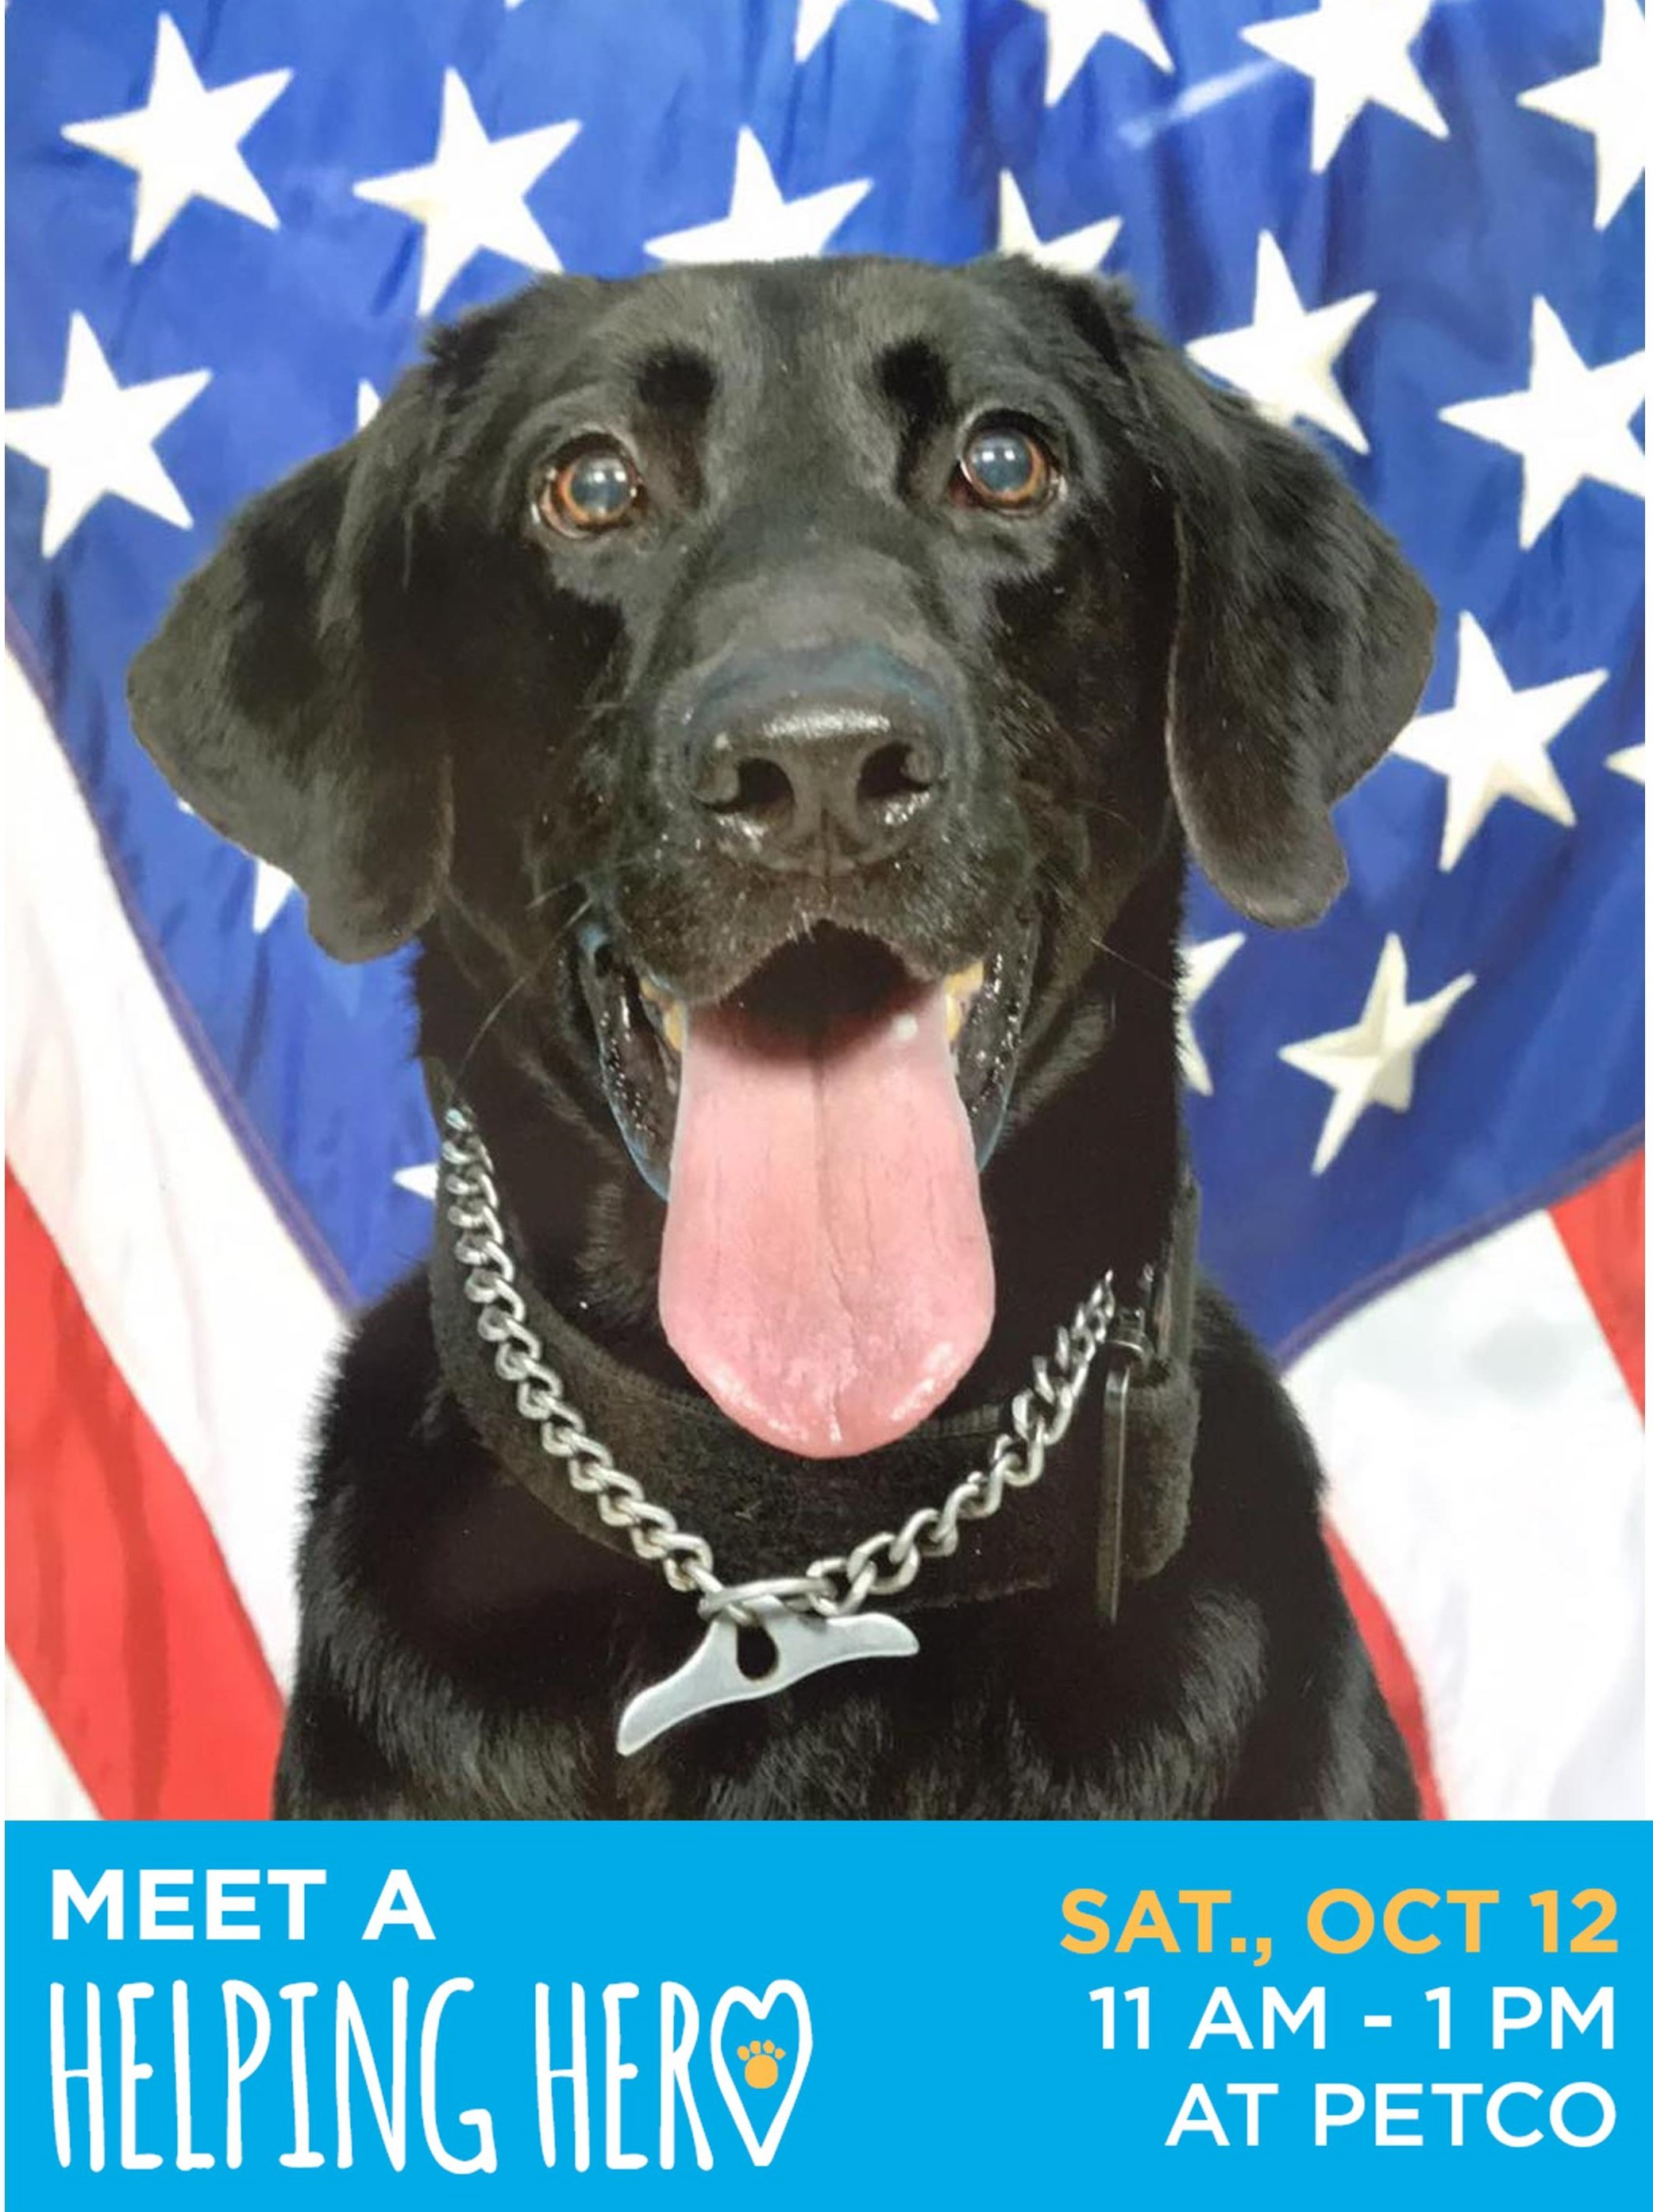 This photo shows RMWD Elmer with a U.S. flag in the background. Elmer will be one of the dogs visiting Petco on October 12 to say thank you for Petco Foundation's generous support.